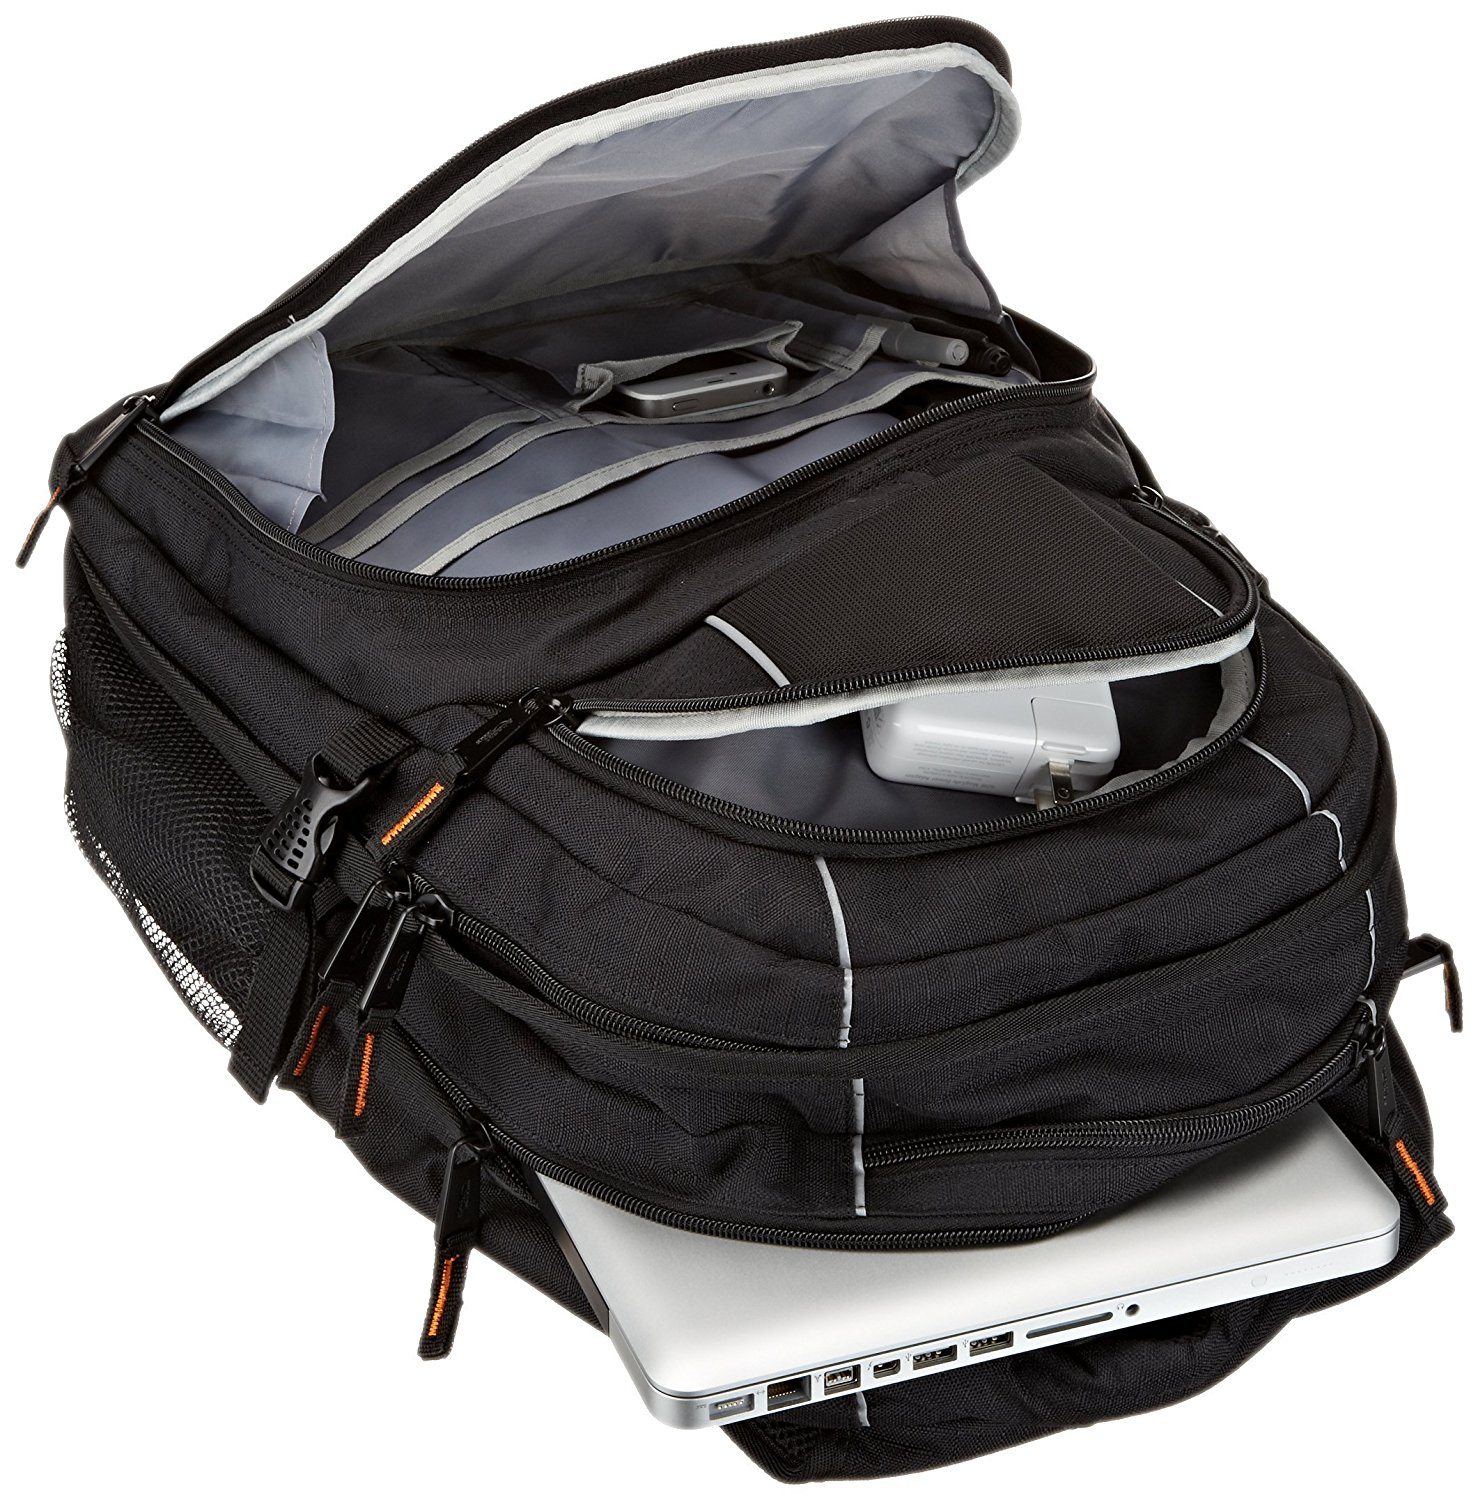 AmazonBasics Laptop Backpack Review   Travel Gear Addict